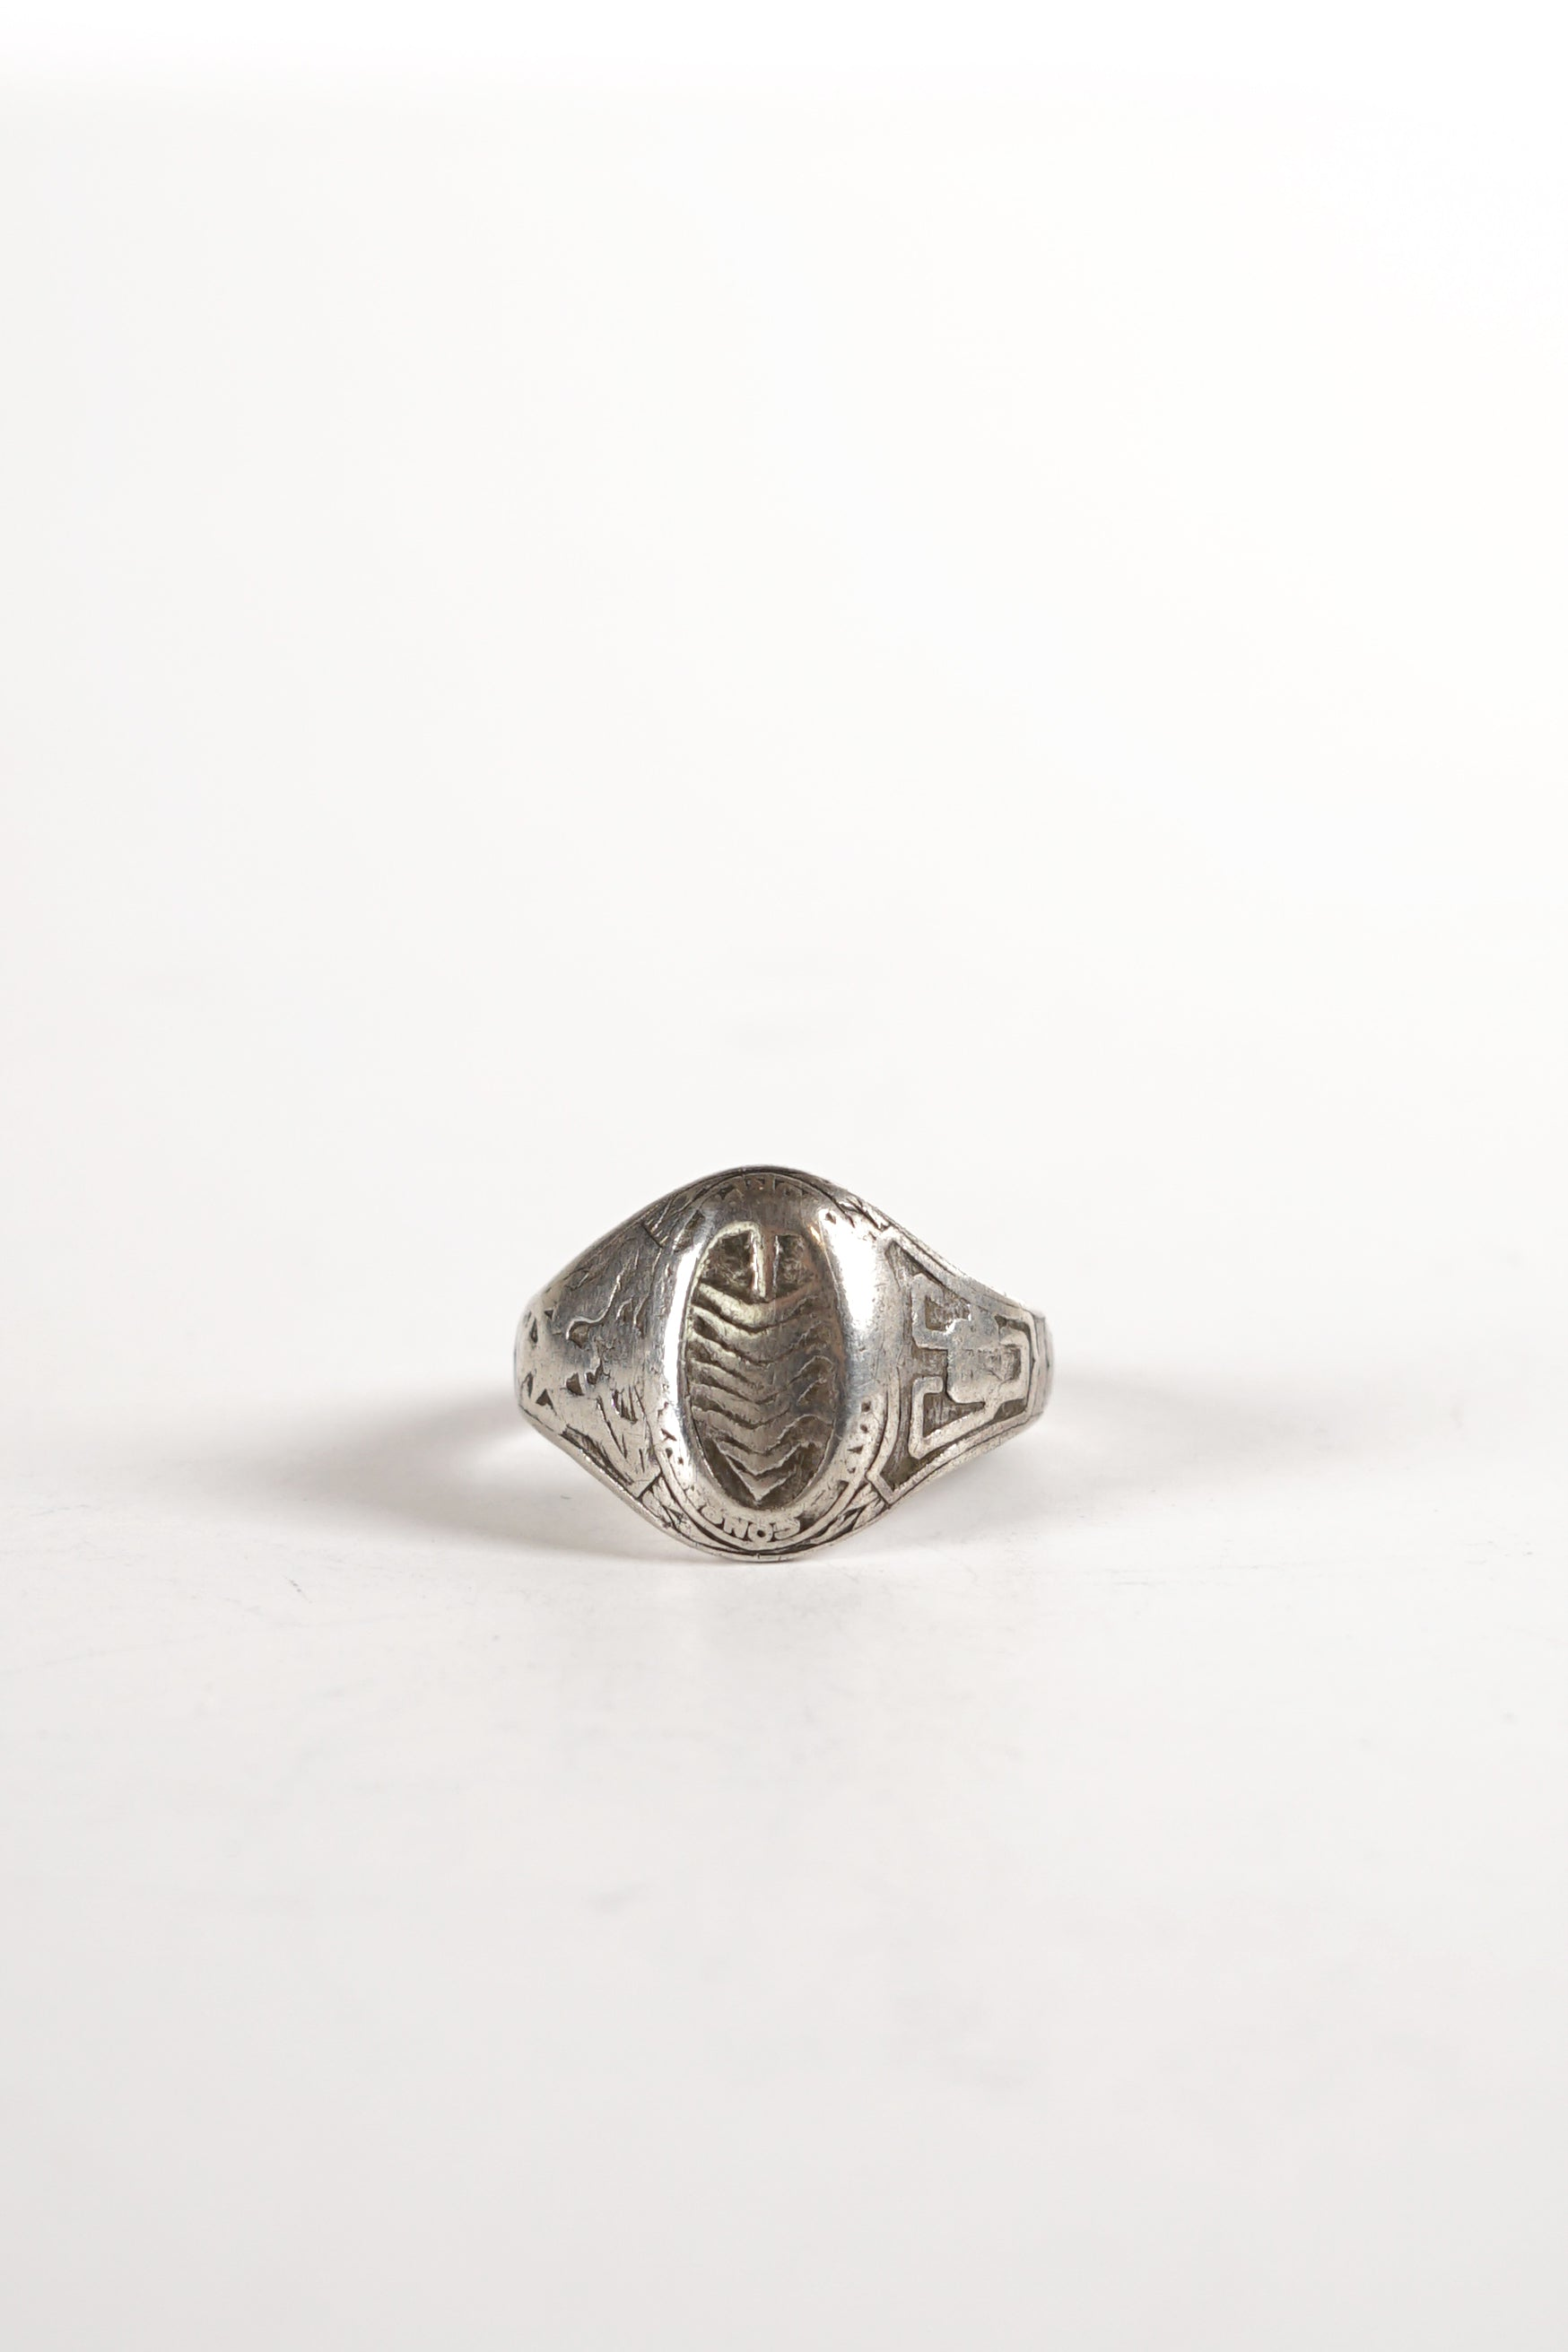 US Military Ring